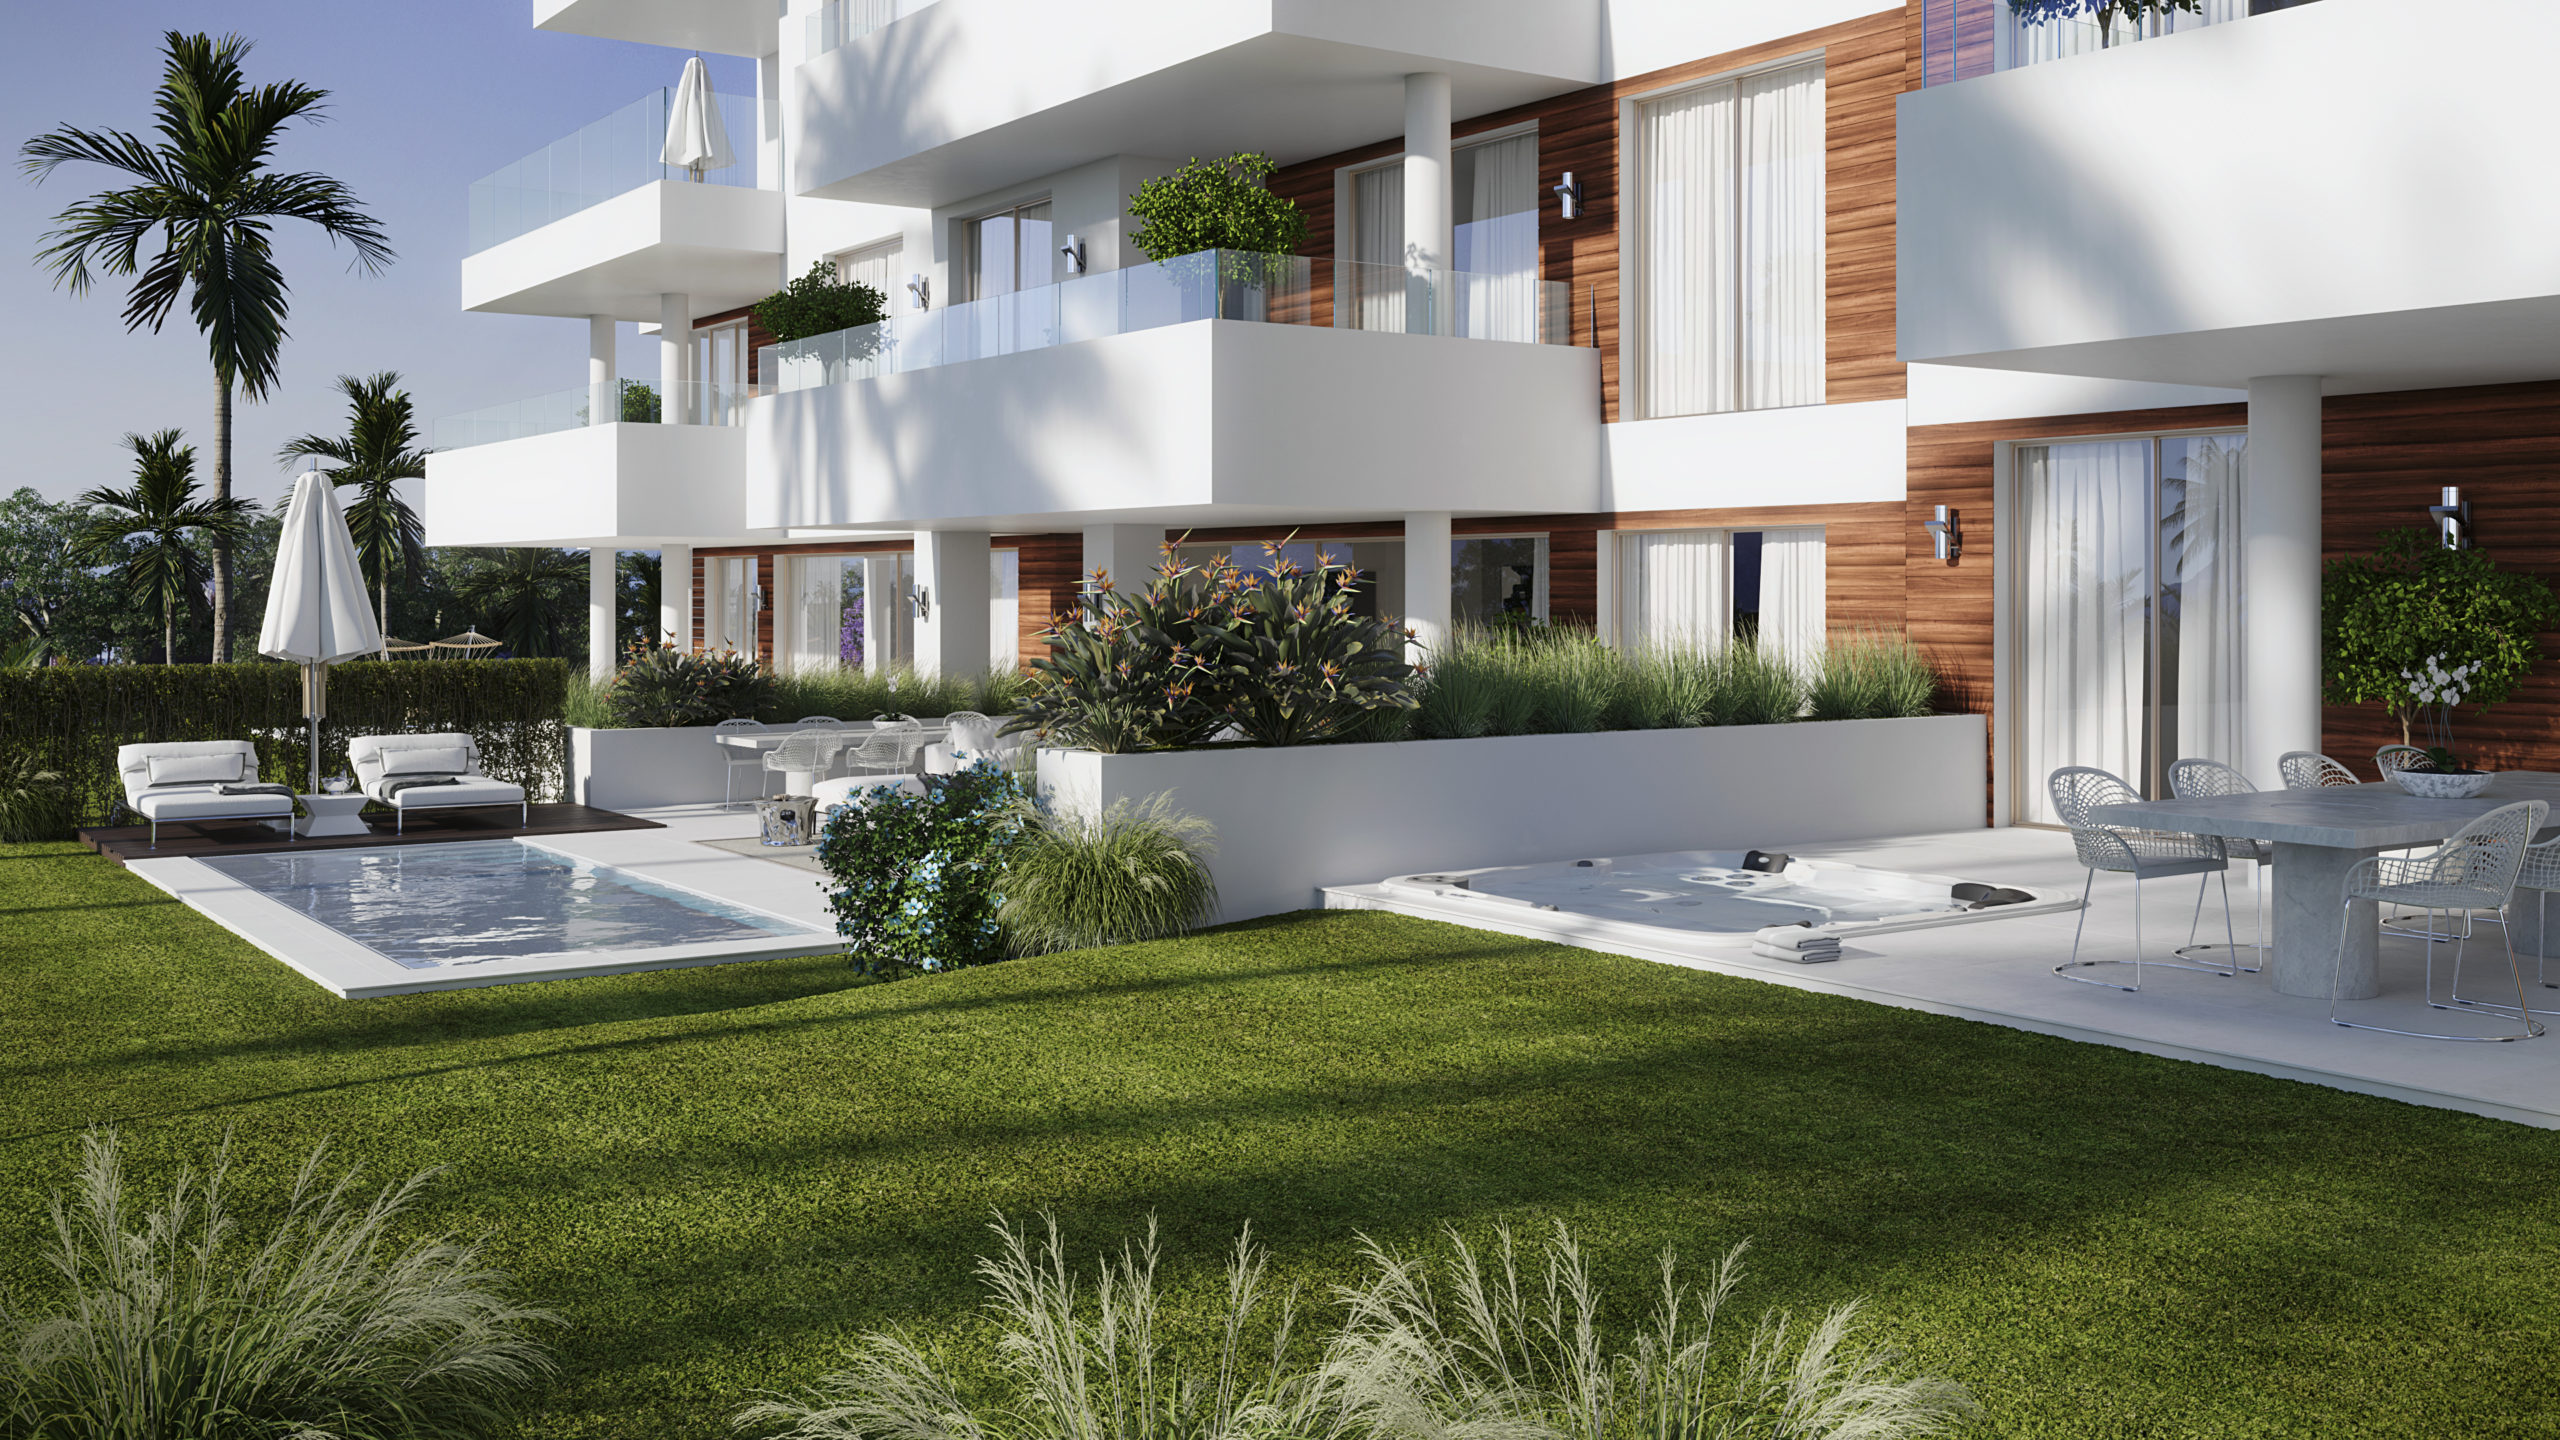 Garden apartment with swimming pool